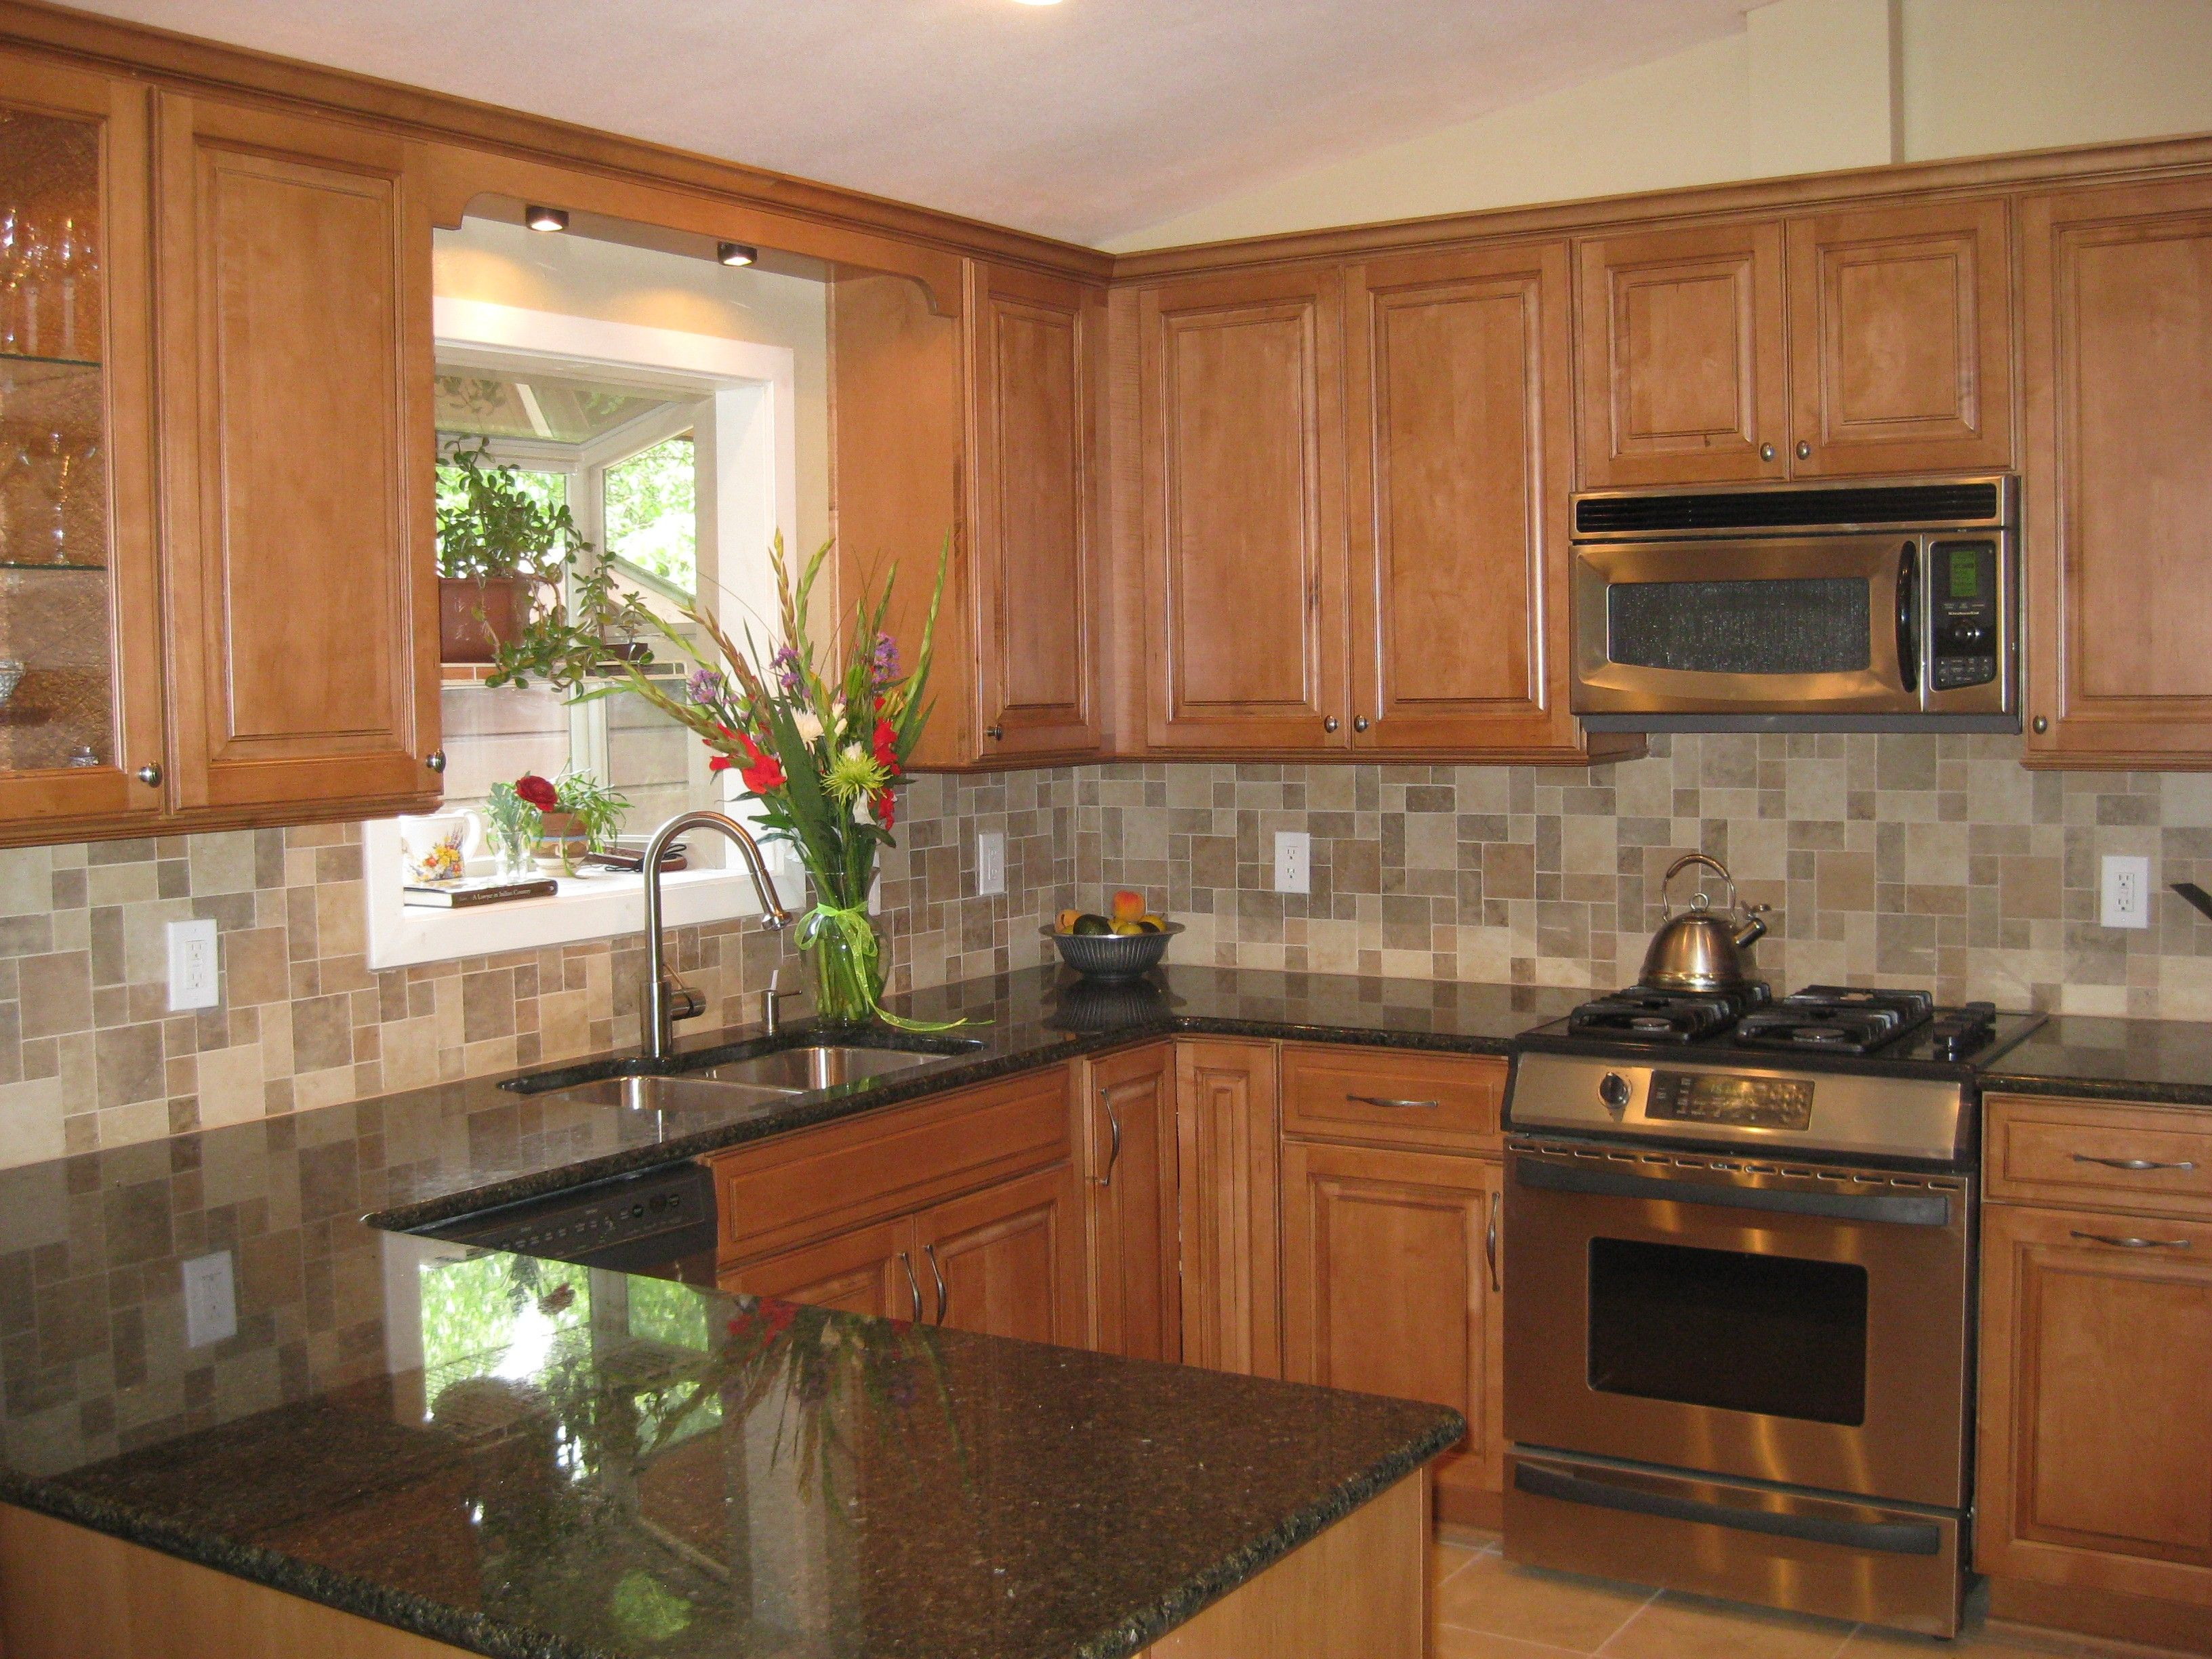 kitchen backsplash ideas maple kitchen sink white ... on Maple Cabinets With Black Granite Countertops  id=20050